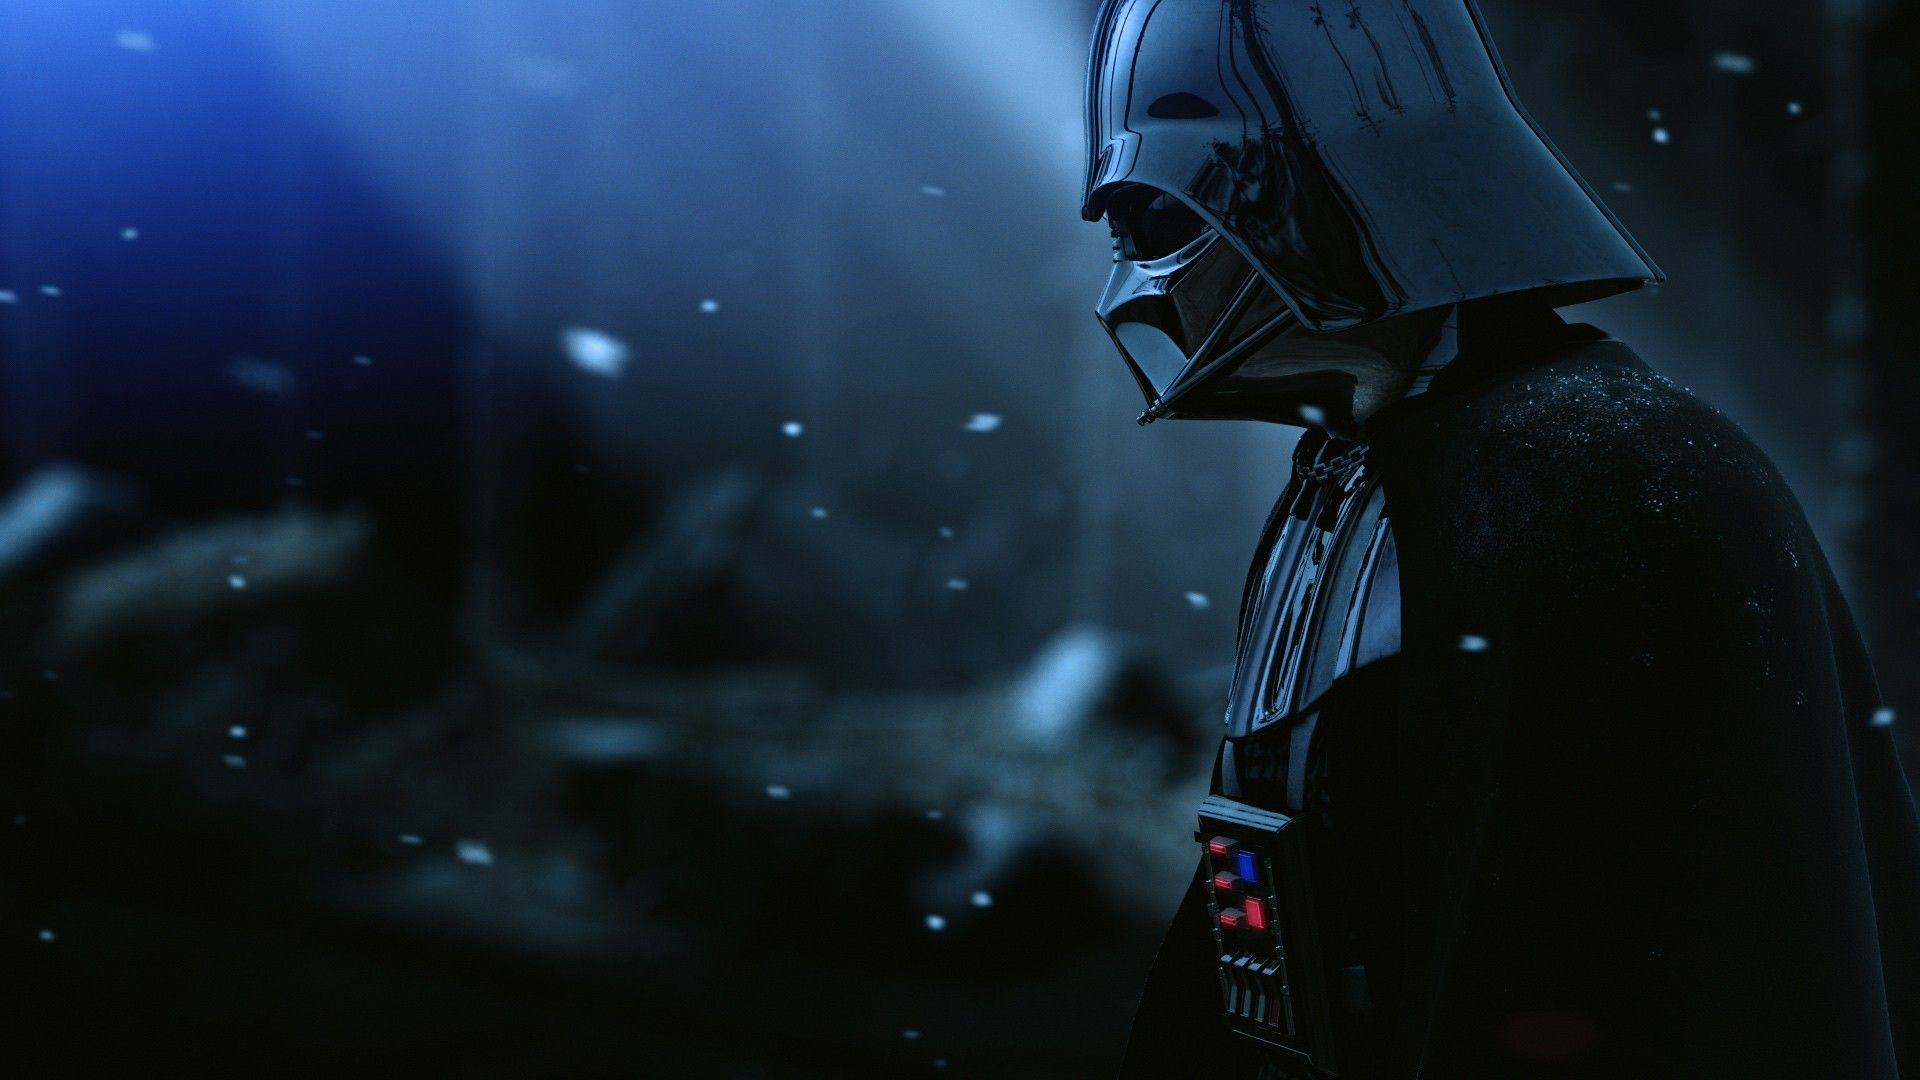 Star Wars Wallpaper 1080